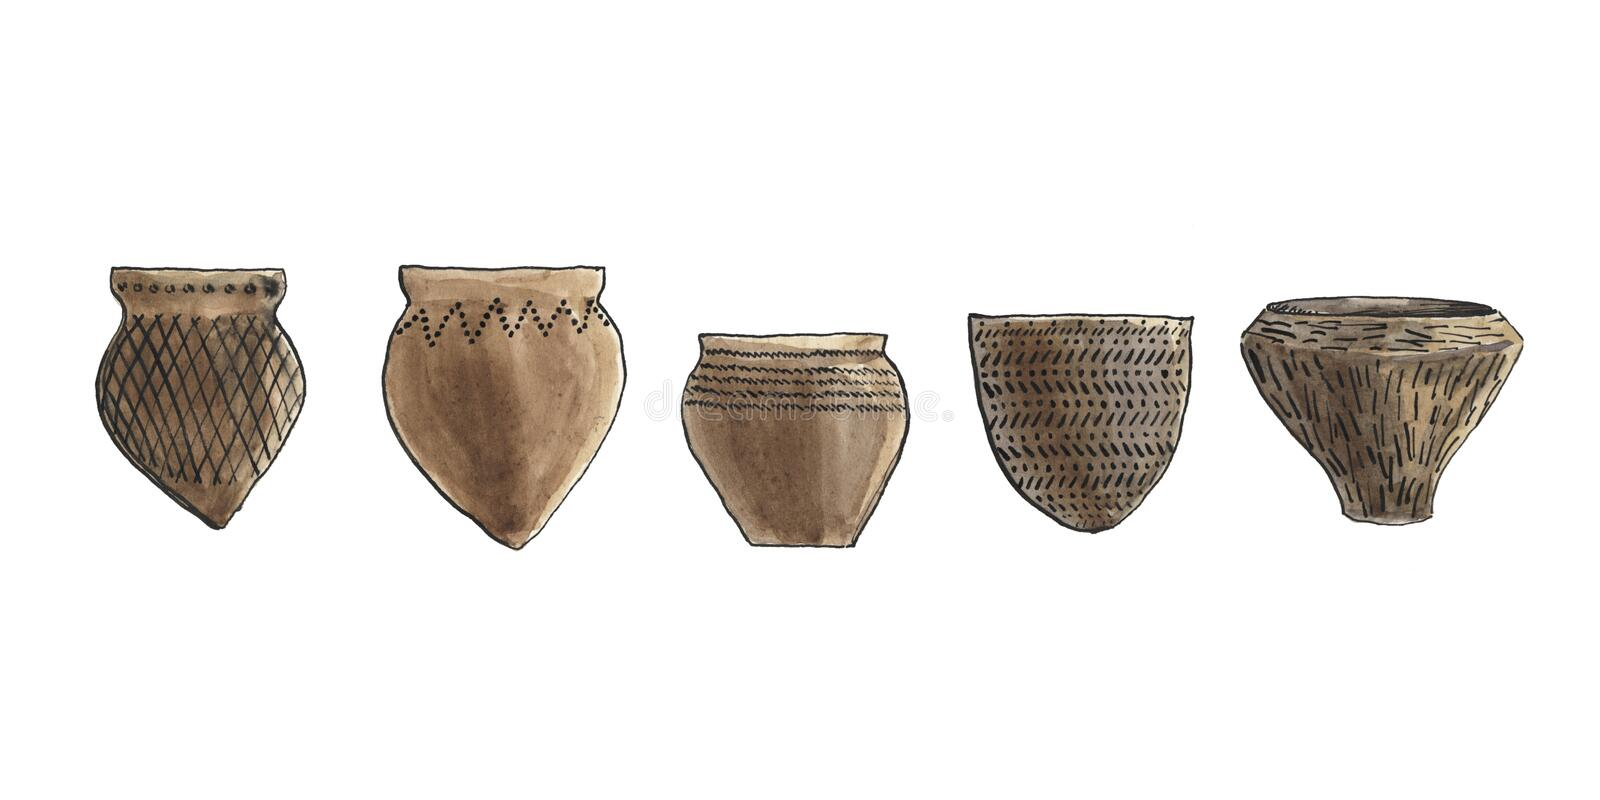 Ancient pottery royalty free illustration